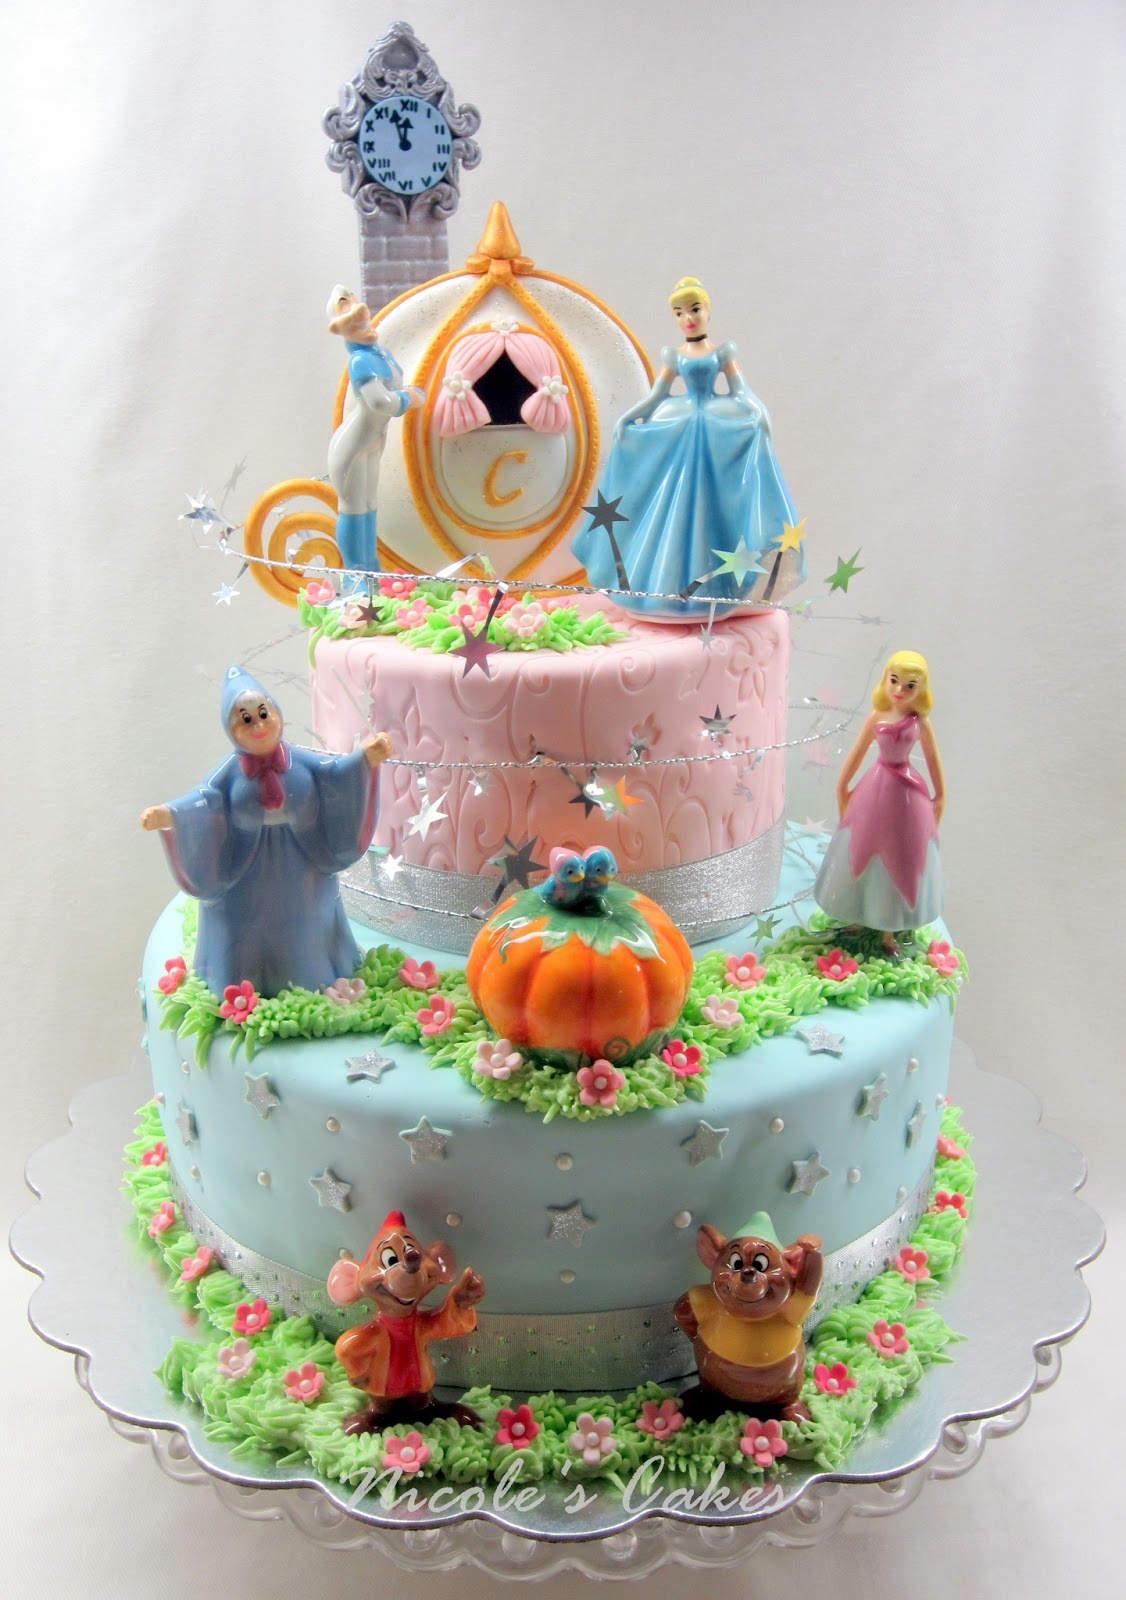 Cake Design Cinderella : Confections, Cakes & Creations!:  The Cinderella Story ...